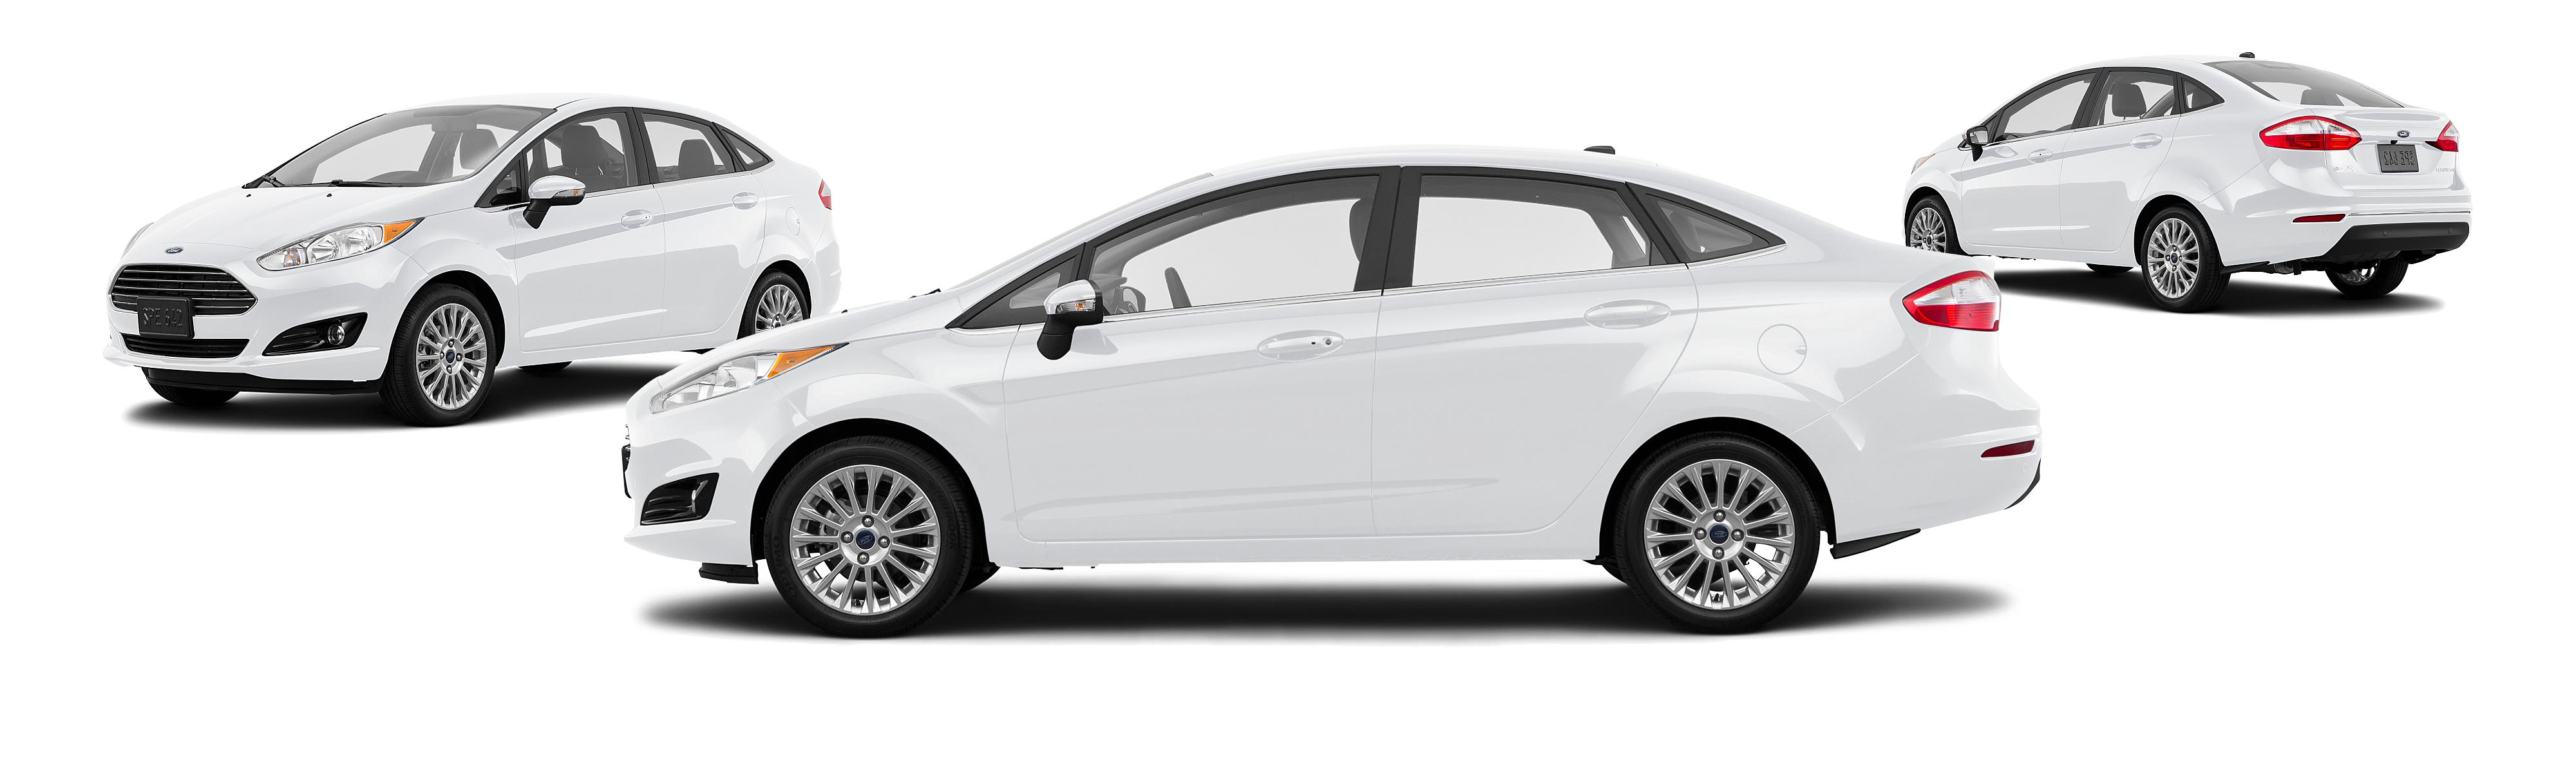 2016 Ford Fiesta Titanium 4dr Sedan